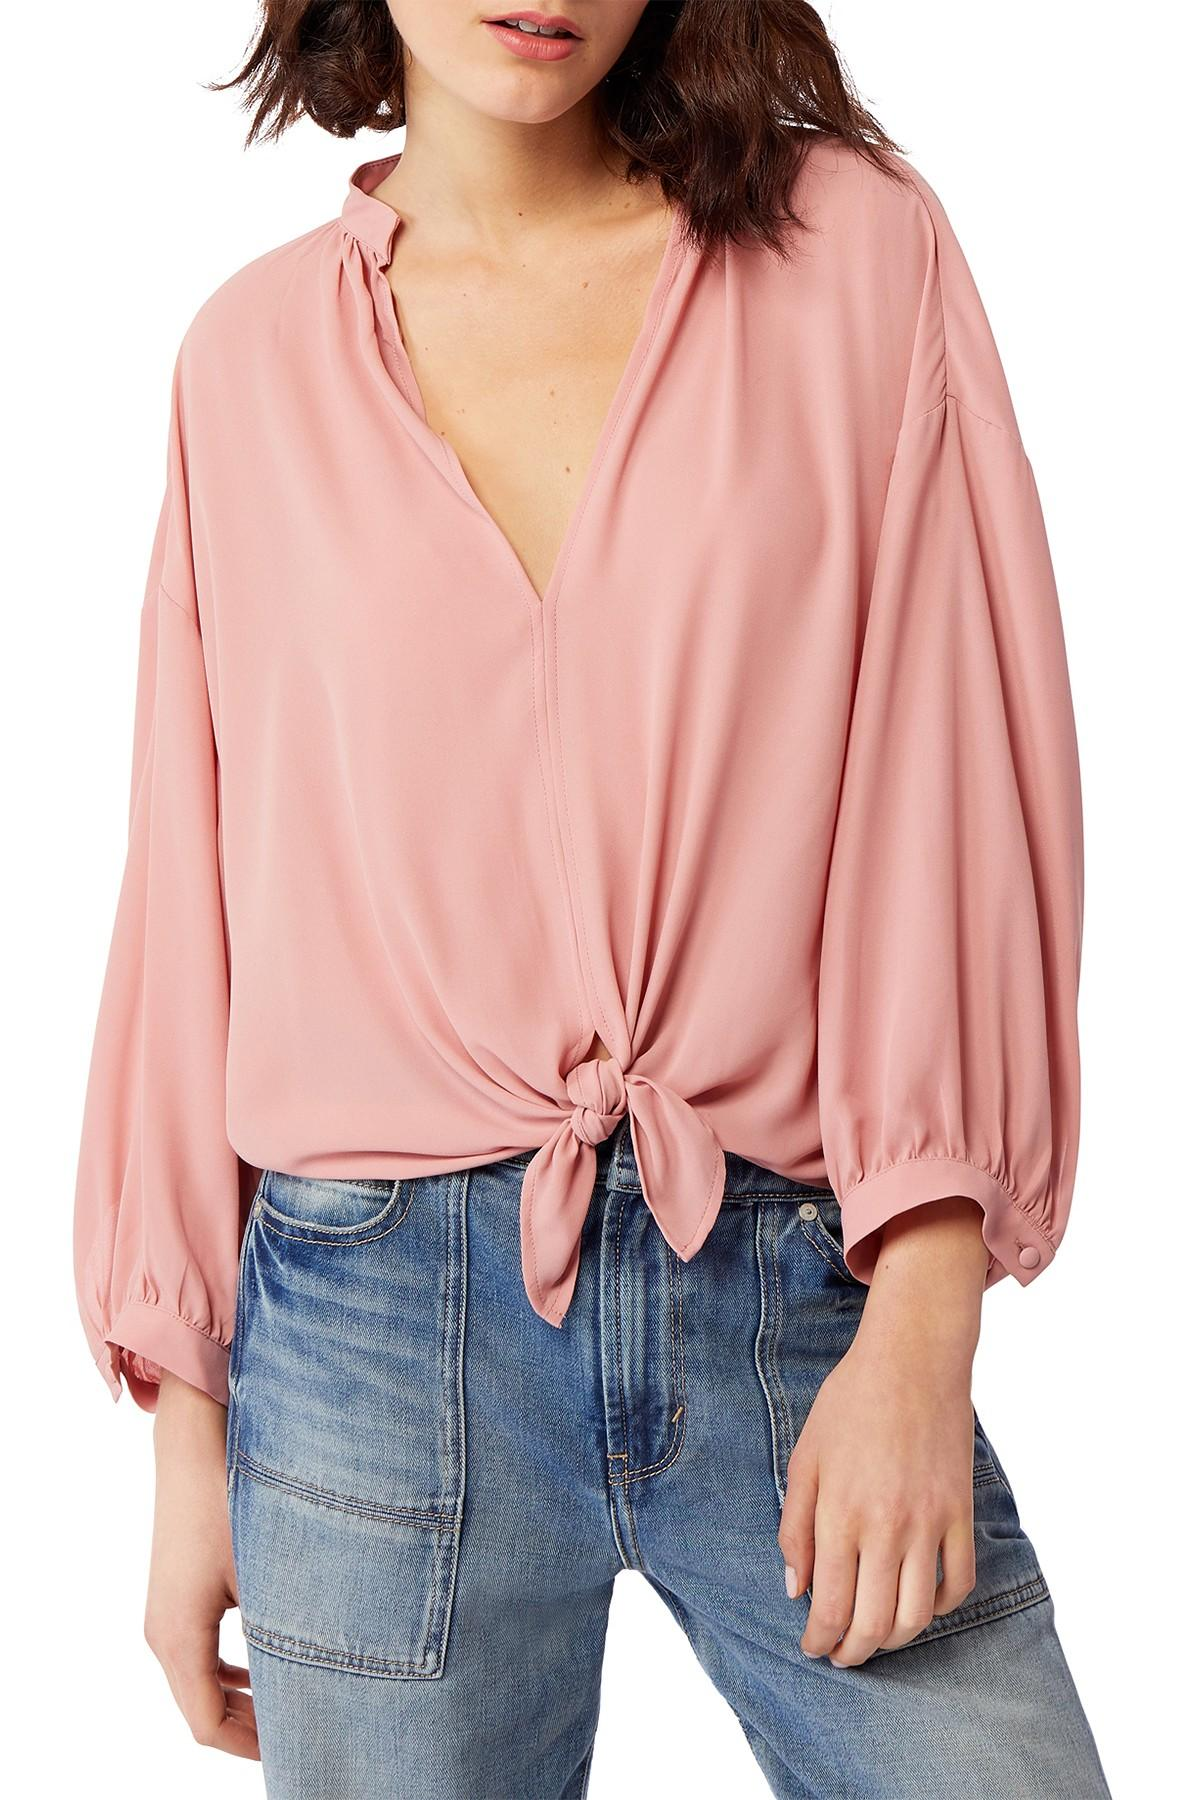 71a19d71486167 Habitual Ryley Long Sleeve Tie-front Blouse in Pink - Lyst